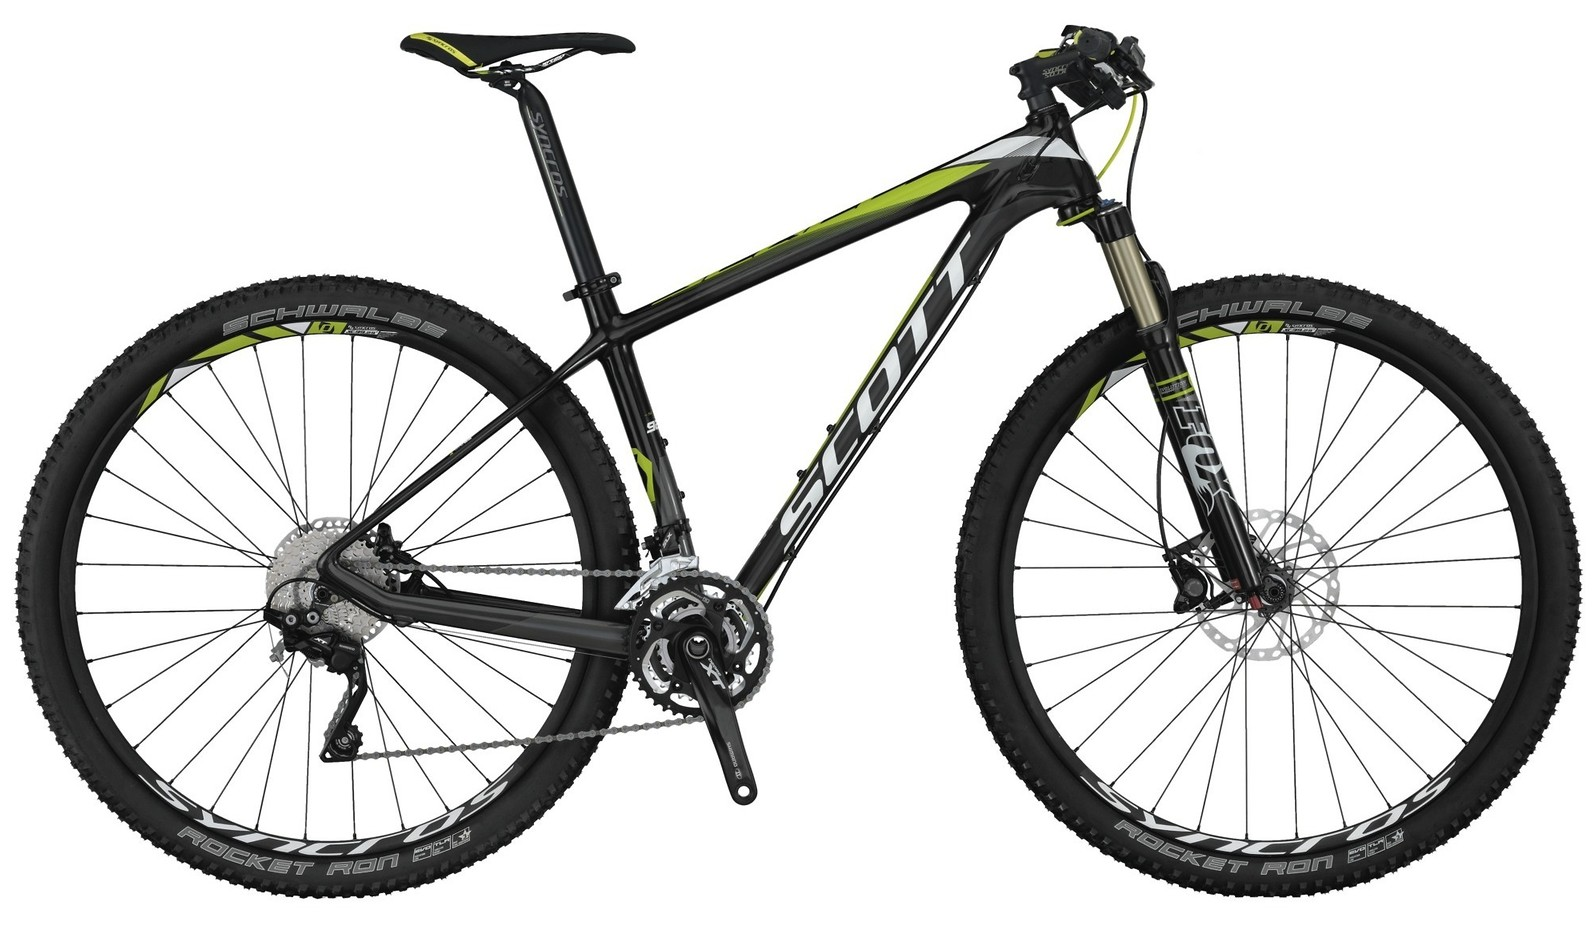 16a51ac7e45 2014 Scott Scale 920 Bike - Reviews, Comparisons, Specs - Mountain ...